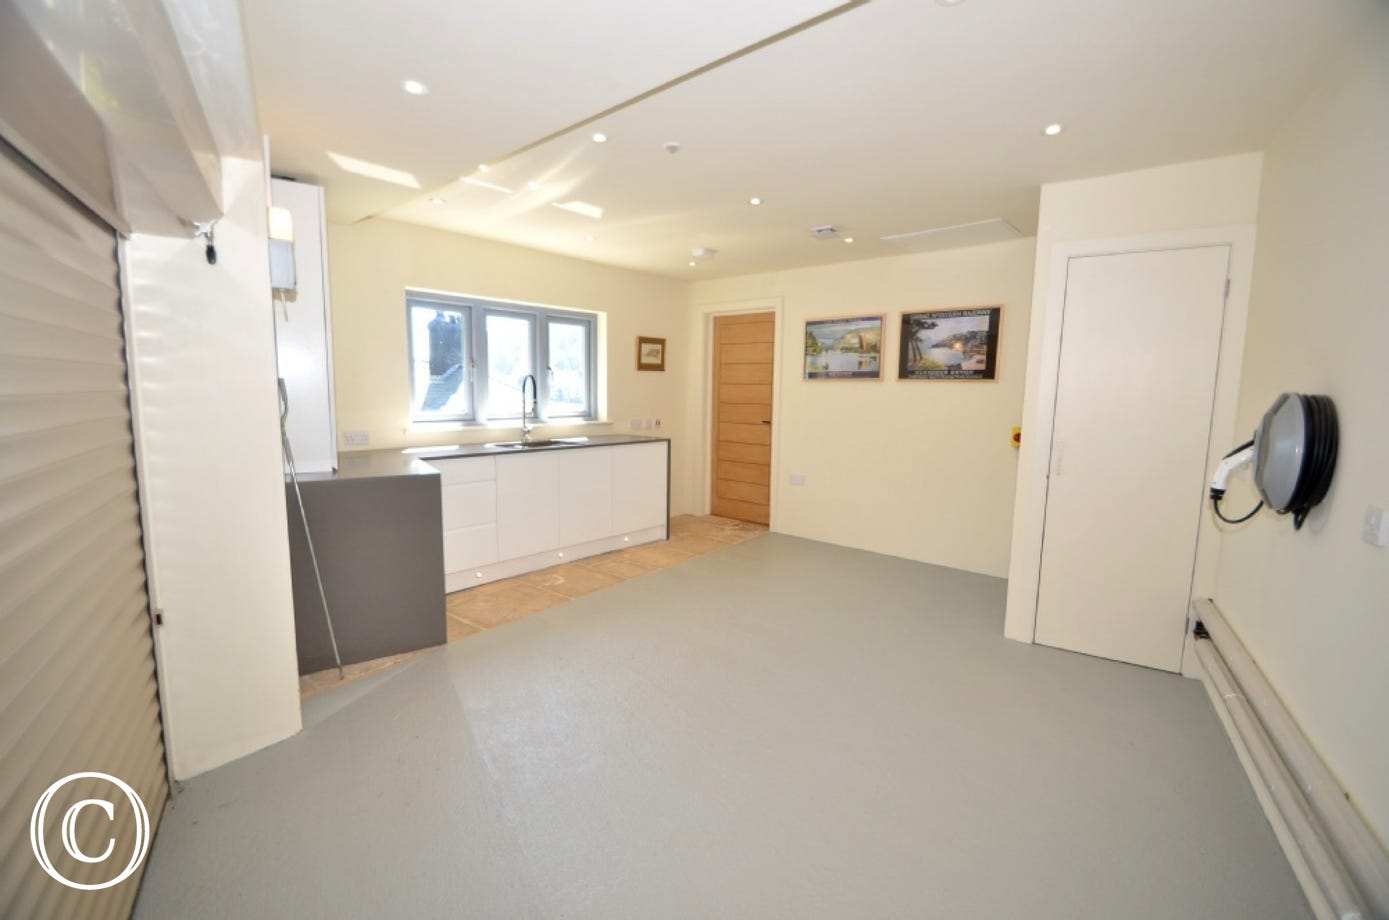 Utility room/Garage at The Edge in Kingswear